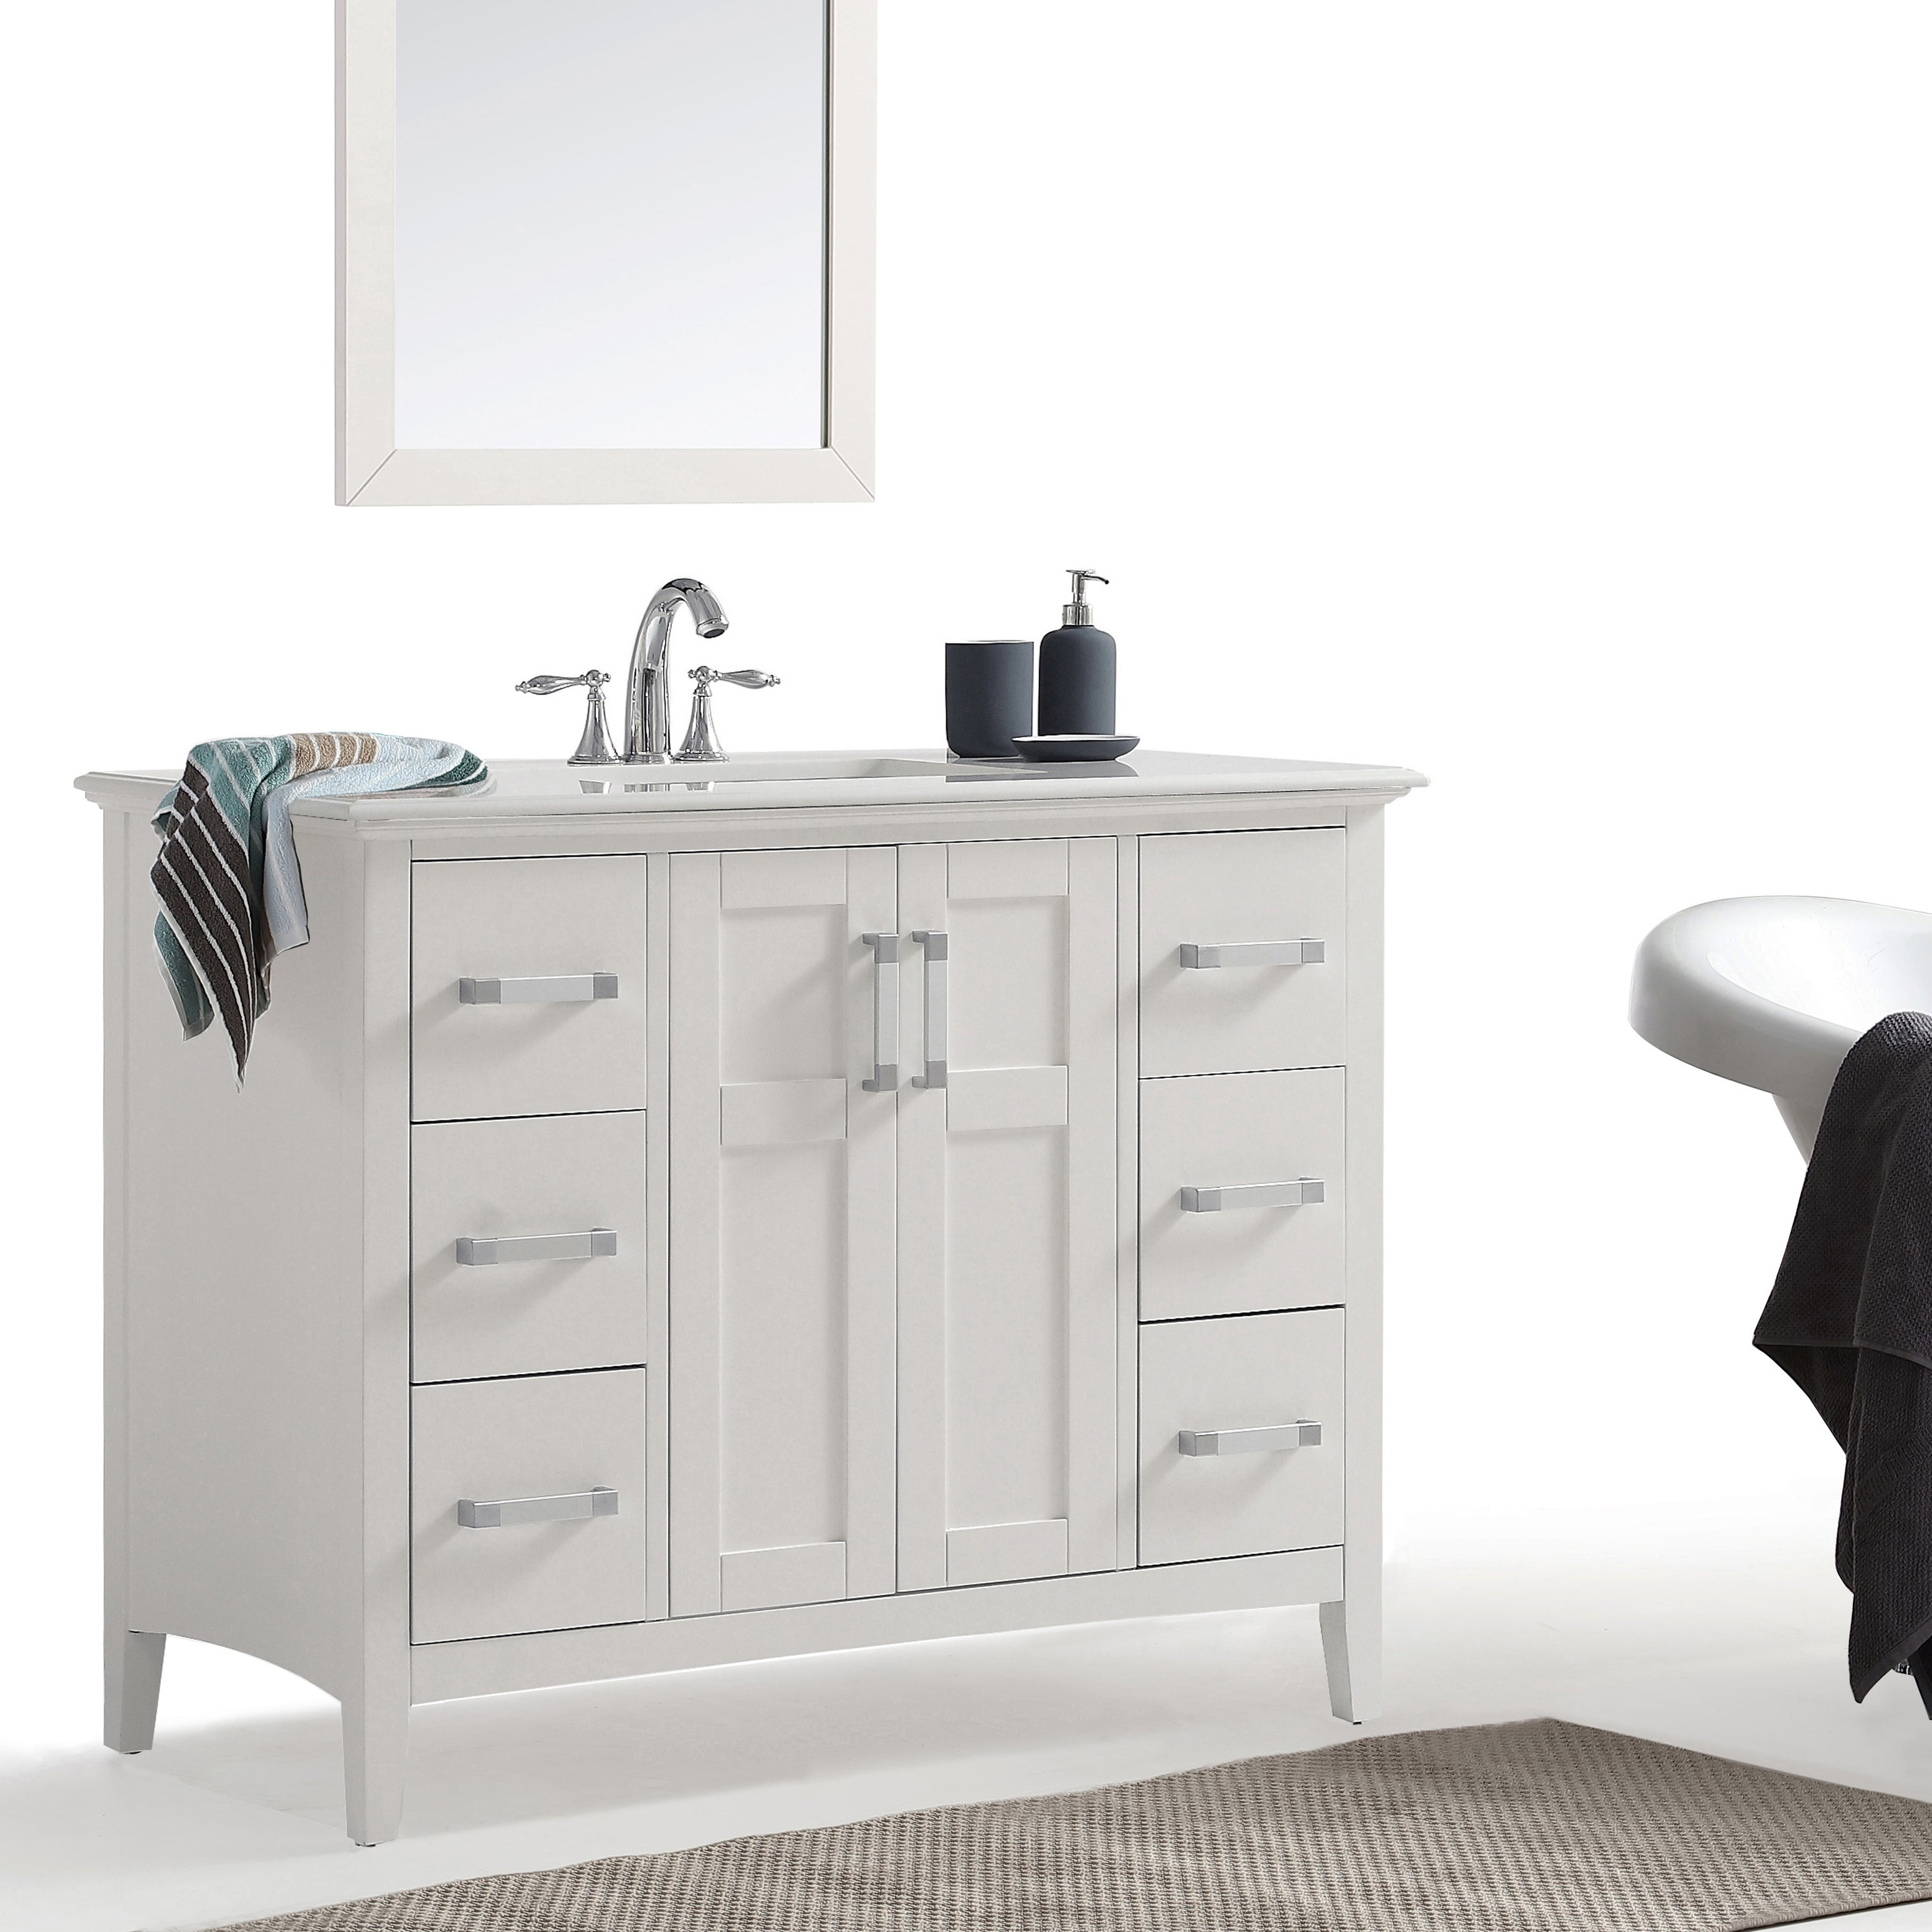 Wyndenhall M 42 Inch Bath Vanity In White With Quartz Marble Top On Free Shipping Today 13933054